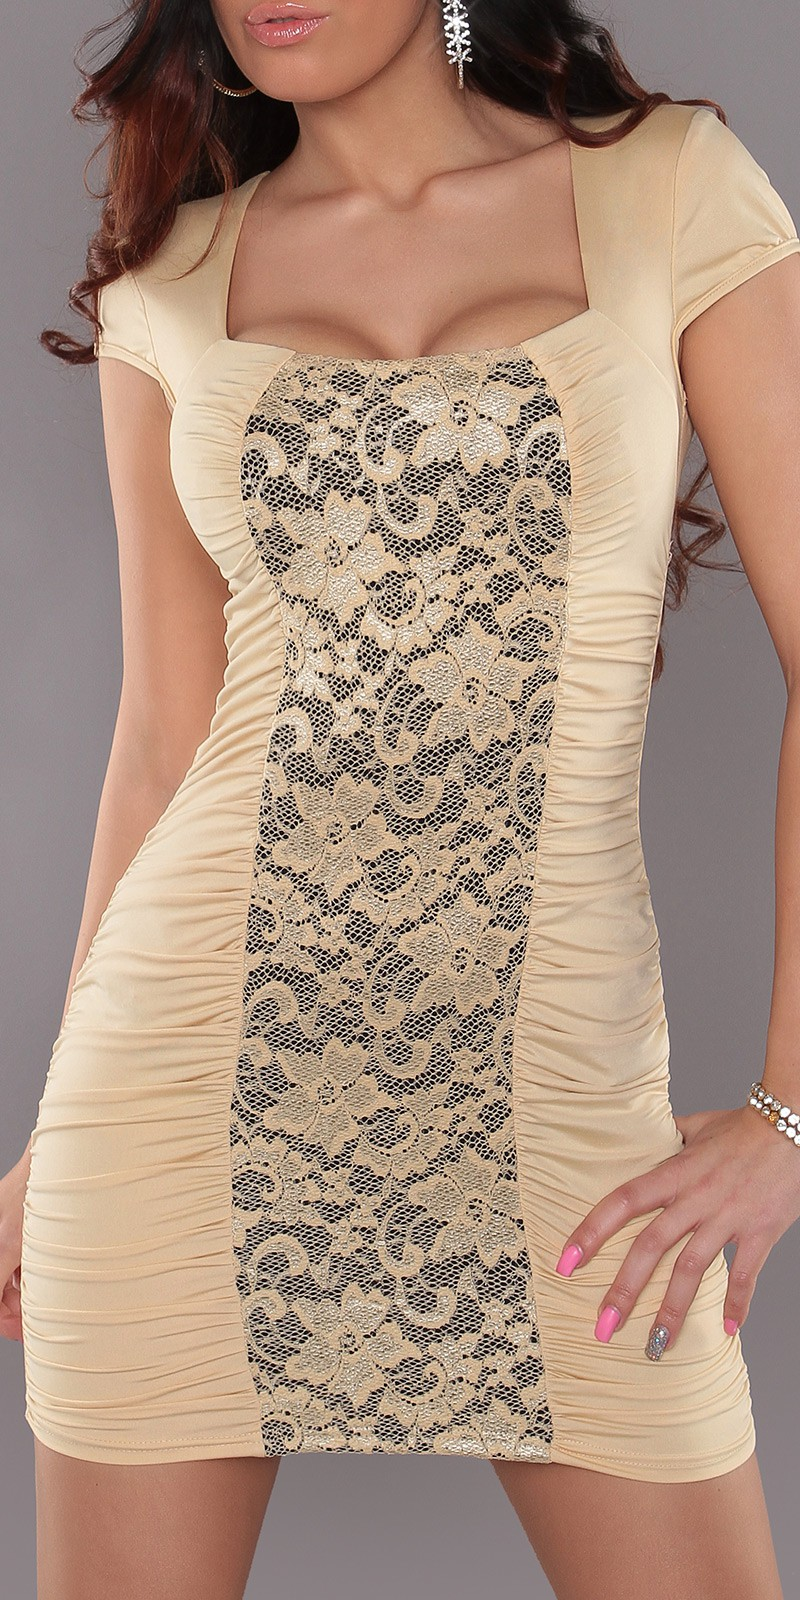 Champagne Square Neck Dress With Lace Insert